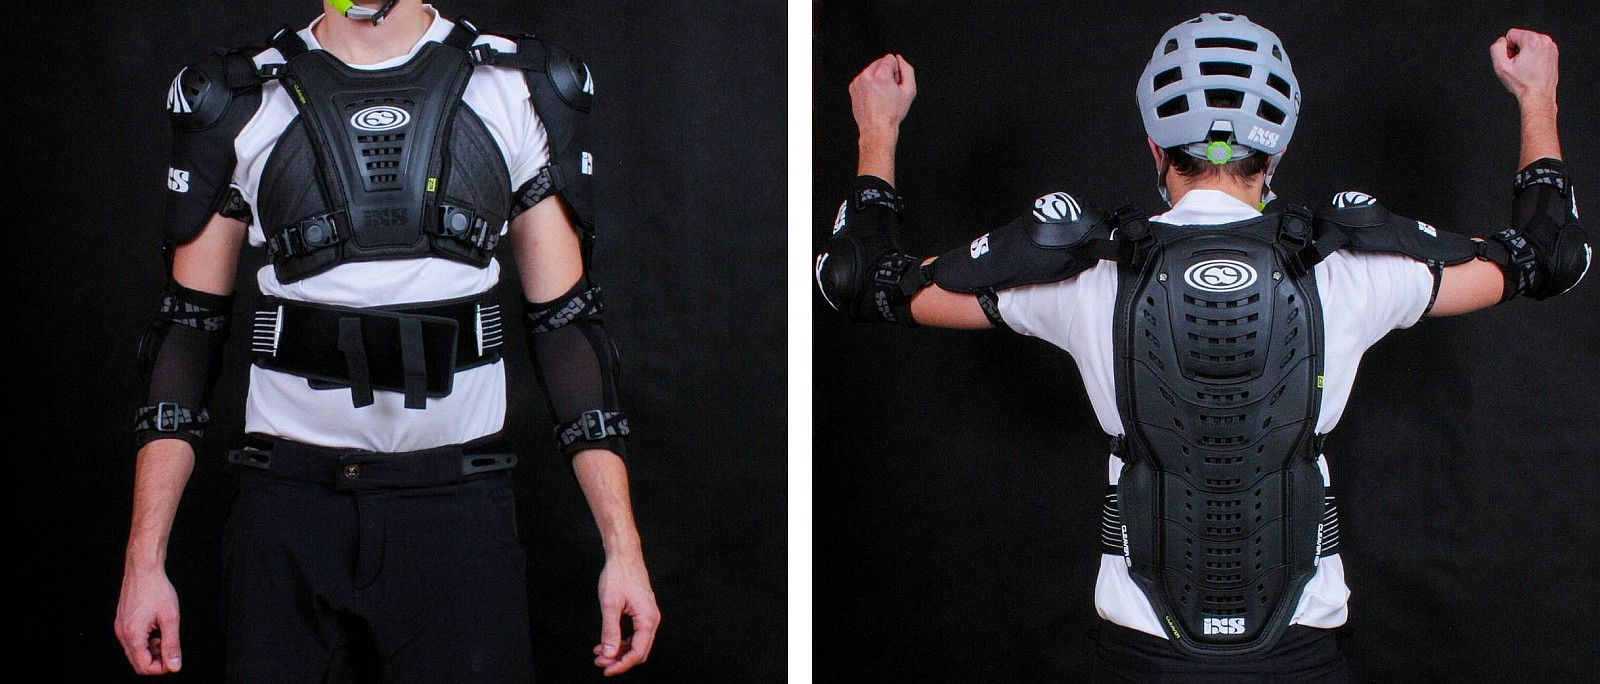 ixs cleaver body armor - first look